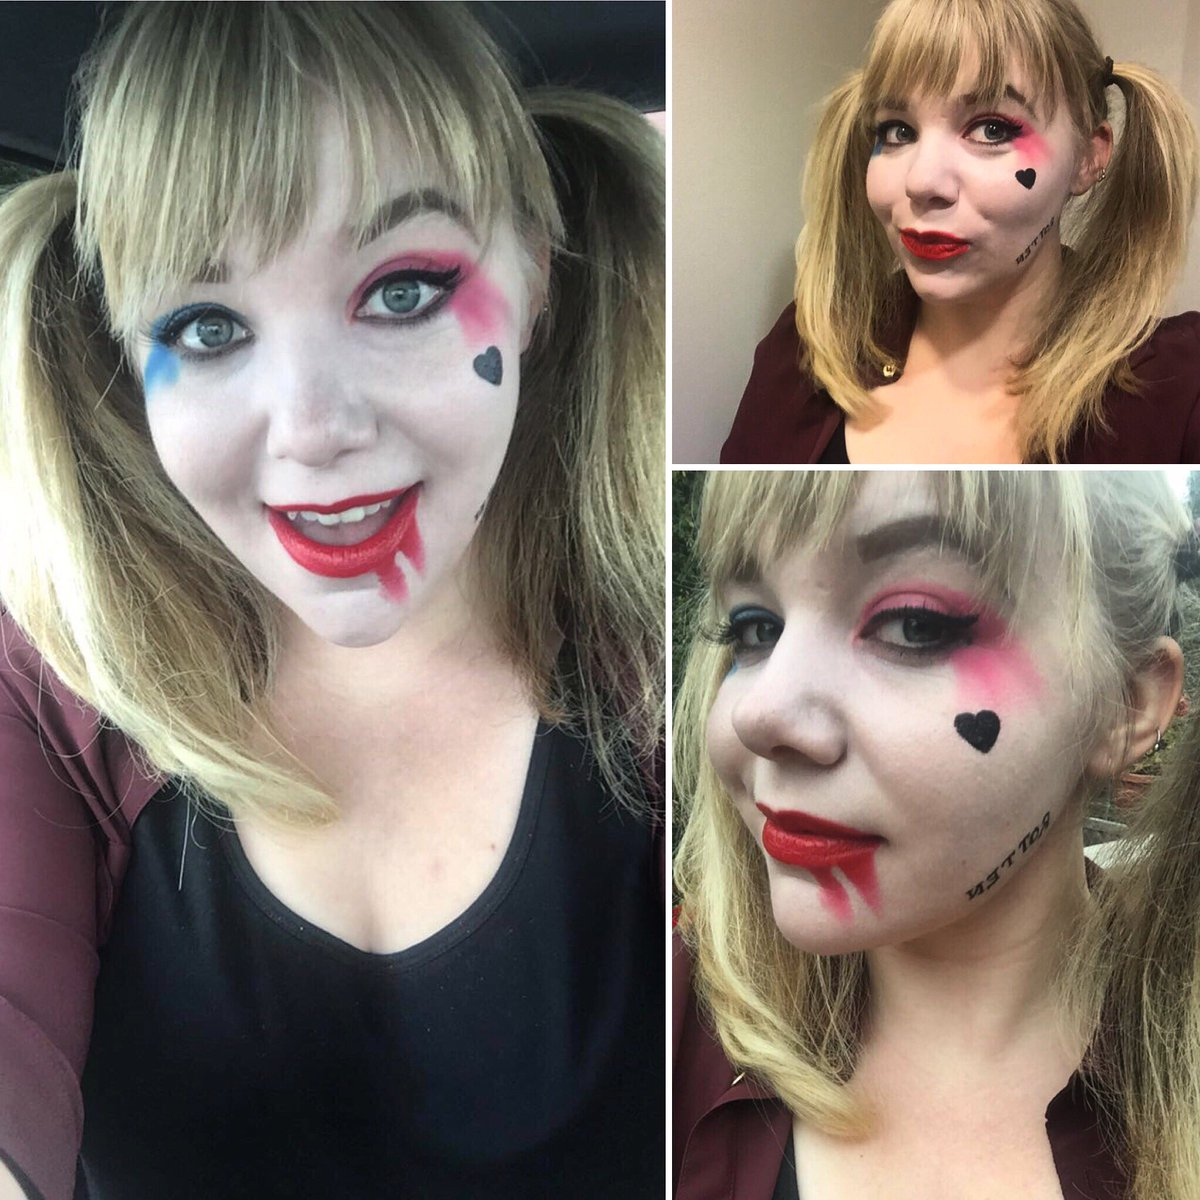 kelsie p smith on twitter tacomaseattle peeps get your halloween makeup done by kelly from genejuarez in tacoma this year shes amazing